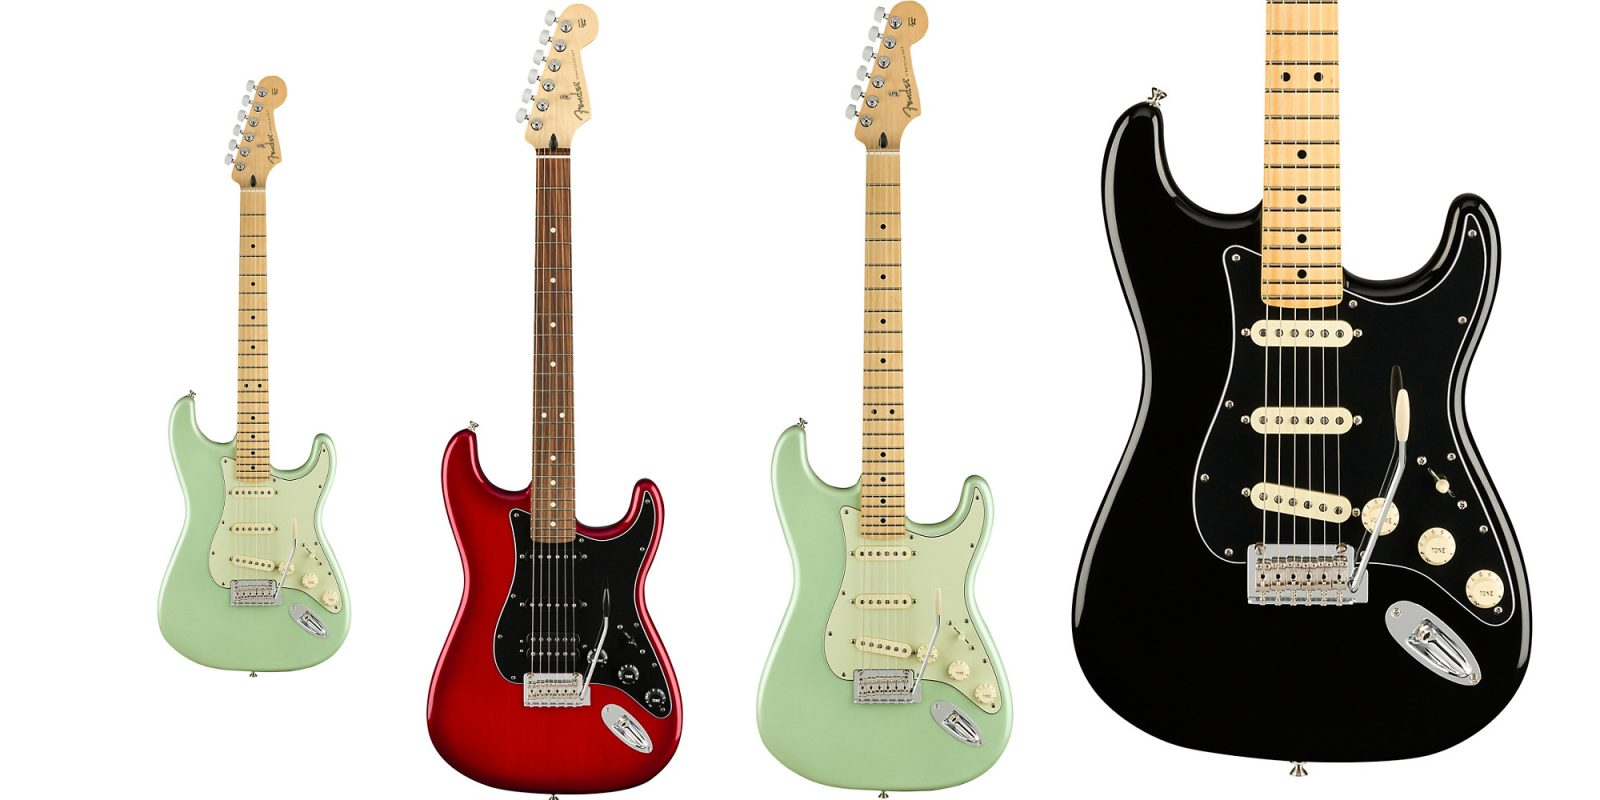 Score a Fender Strat at $125 off today, deals from $550 (multiple colorways)